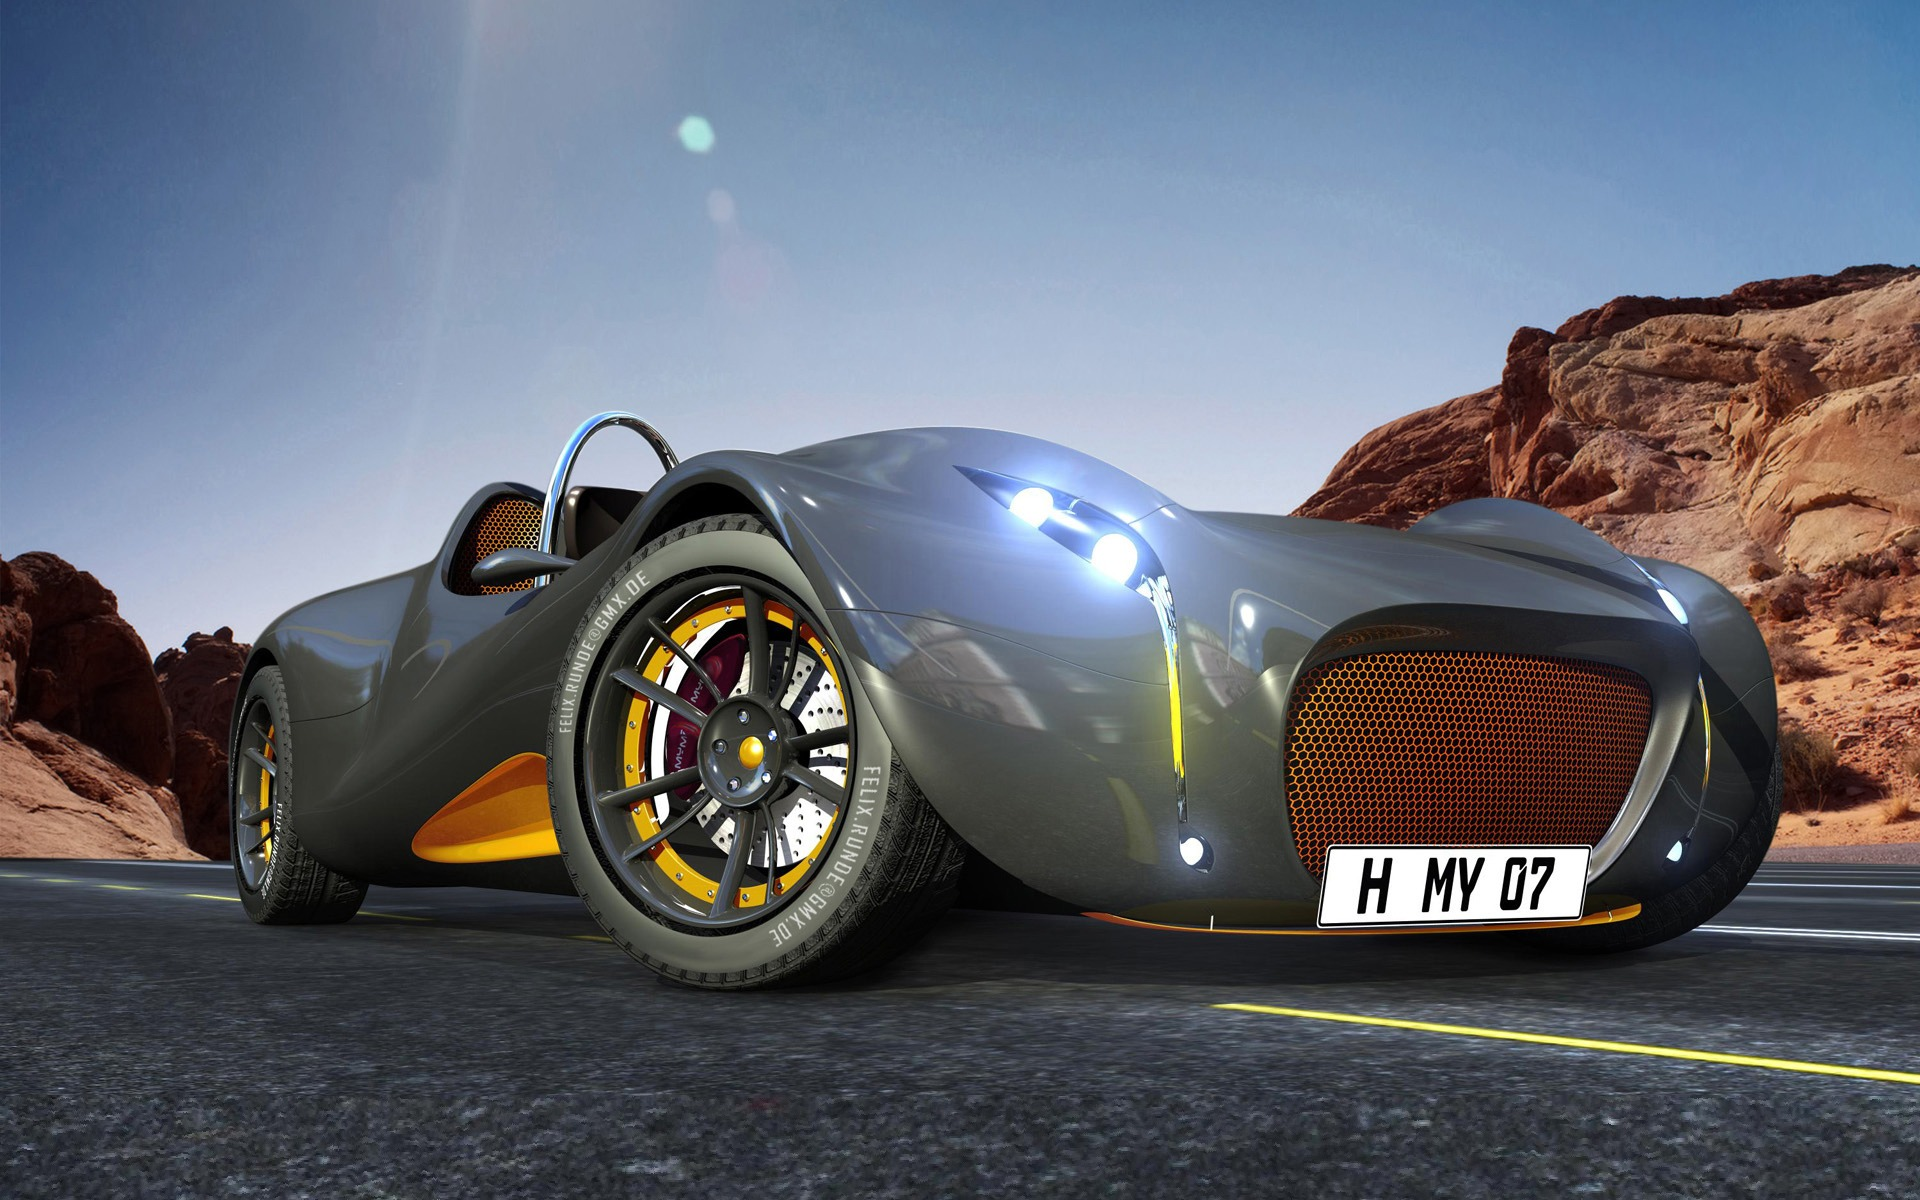 3d Car Wallpaper Morey Concept Car Wallpaper 3d Models 3d Wallpapers In Jpg Format